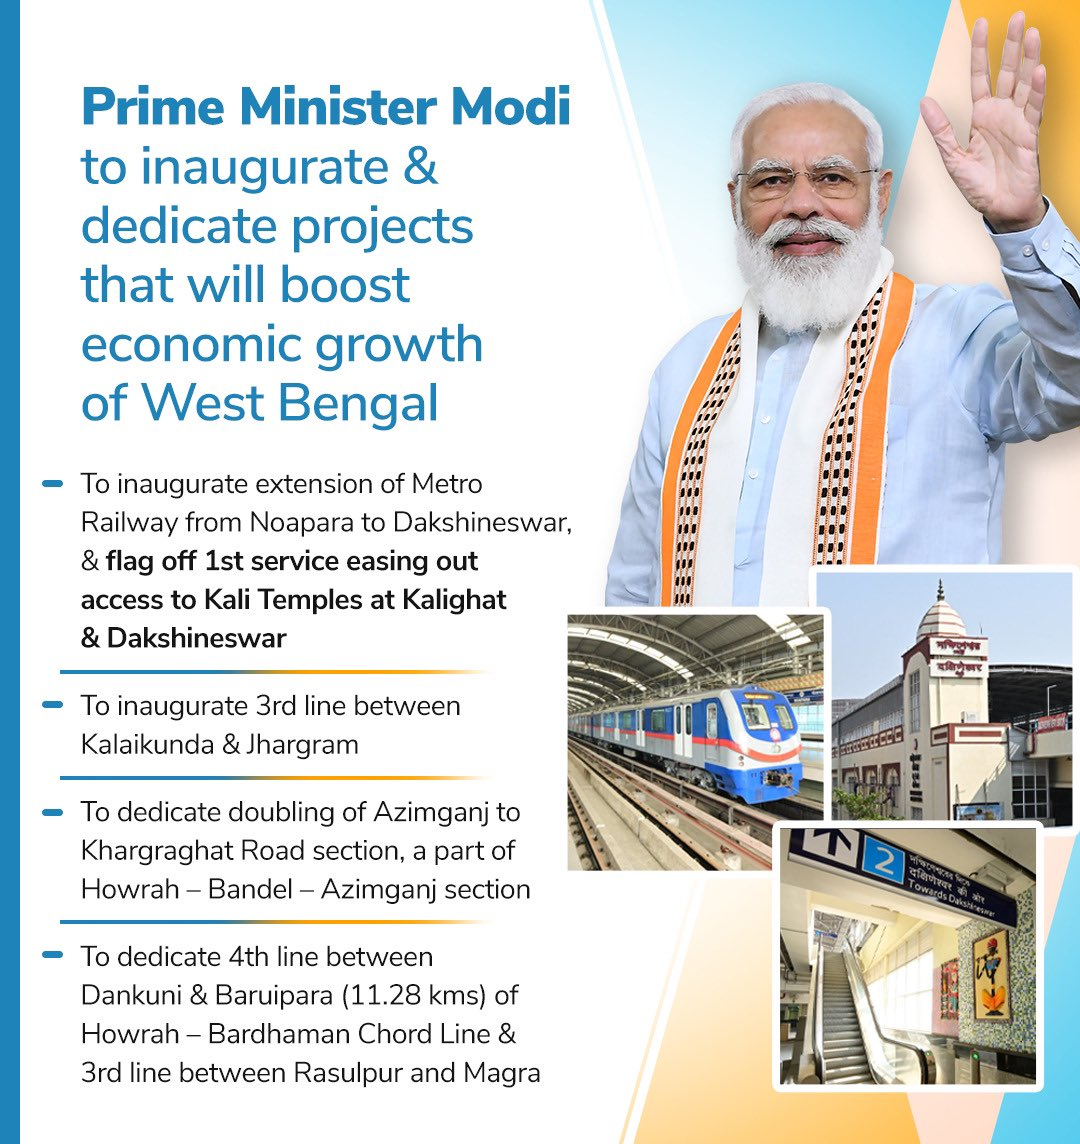 Furthering connectivity and prosperity in West Bengal.